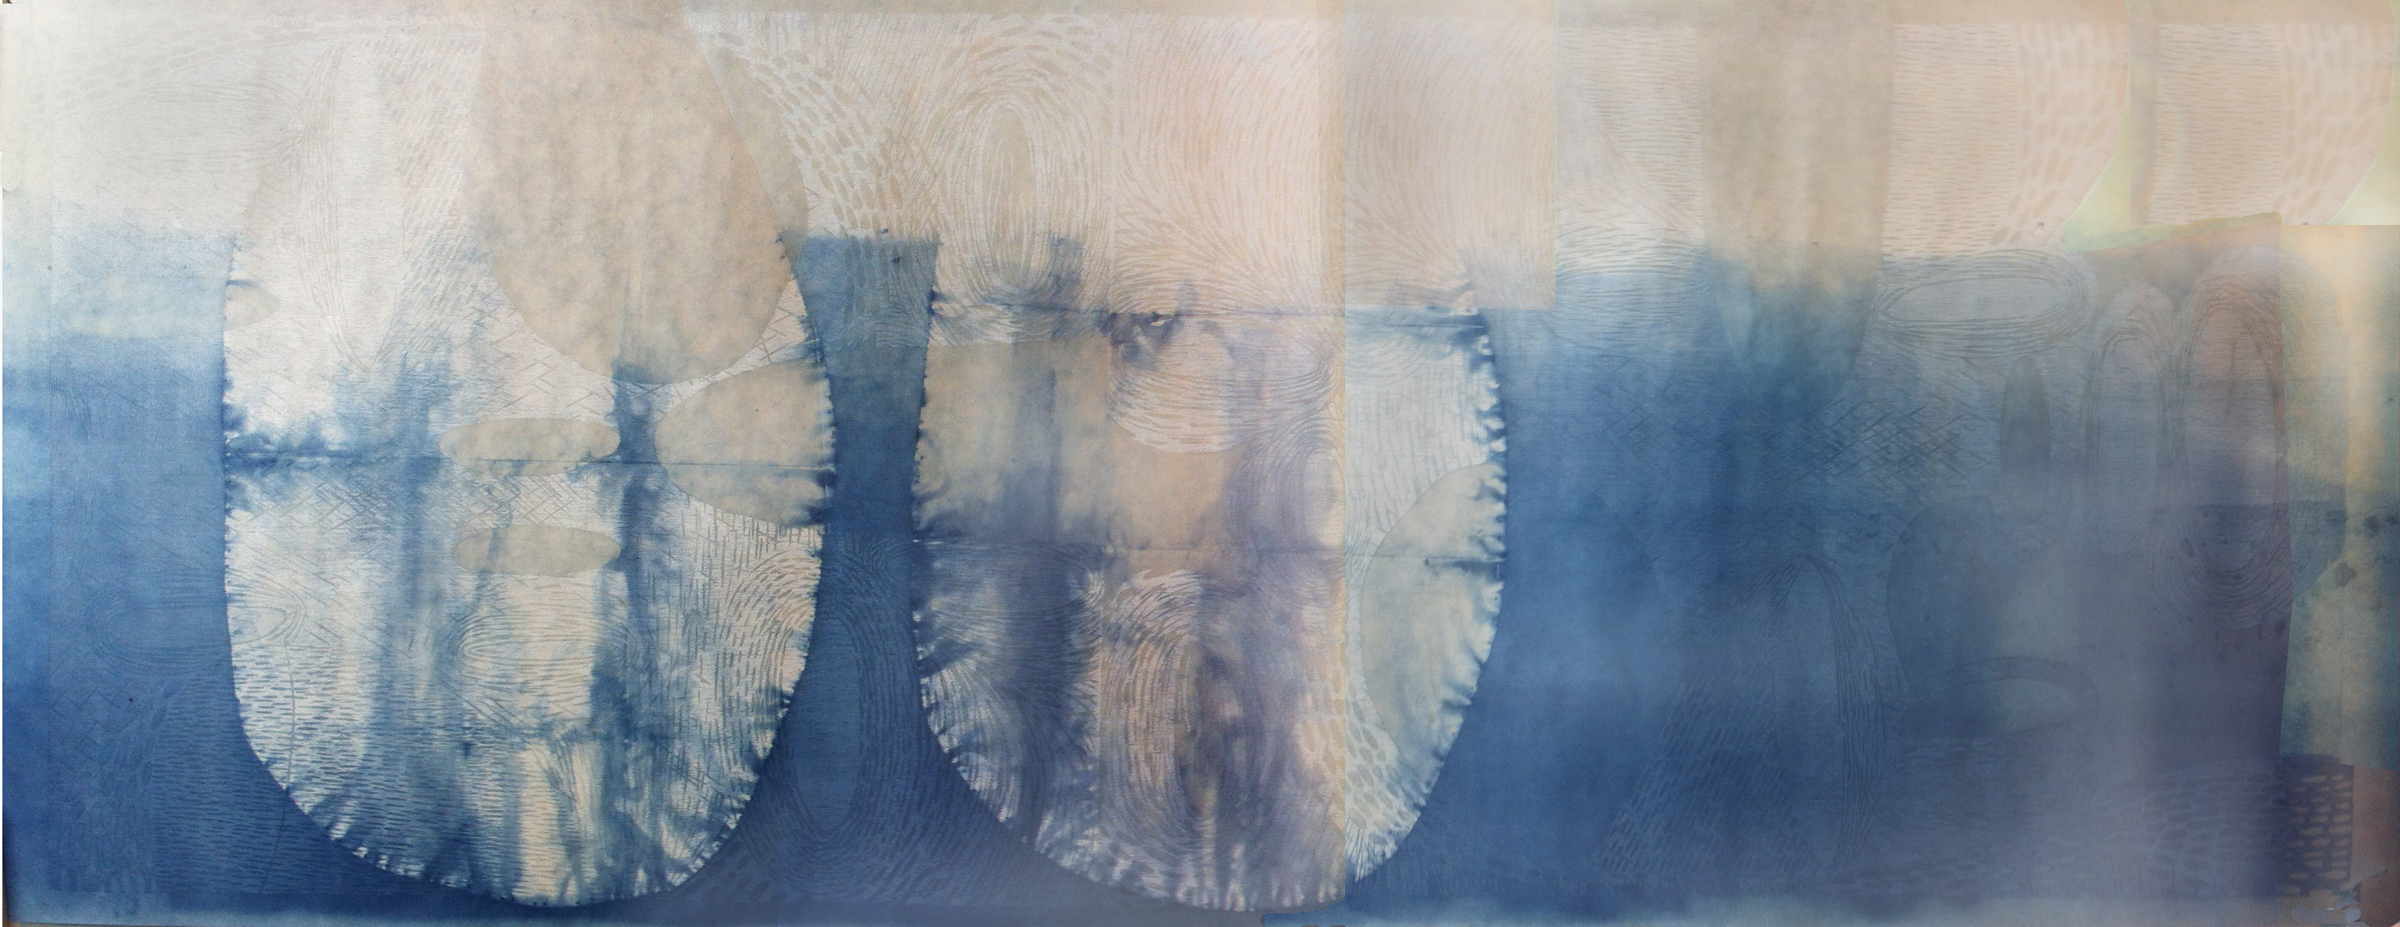 """""""Two Forms,"""" 2012 1/1  woodcut print on Japanese paper with indigo dye  27 1/2"""" x 72 1/2"""""""